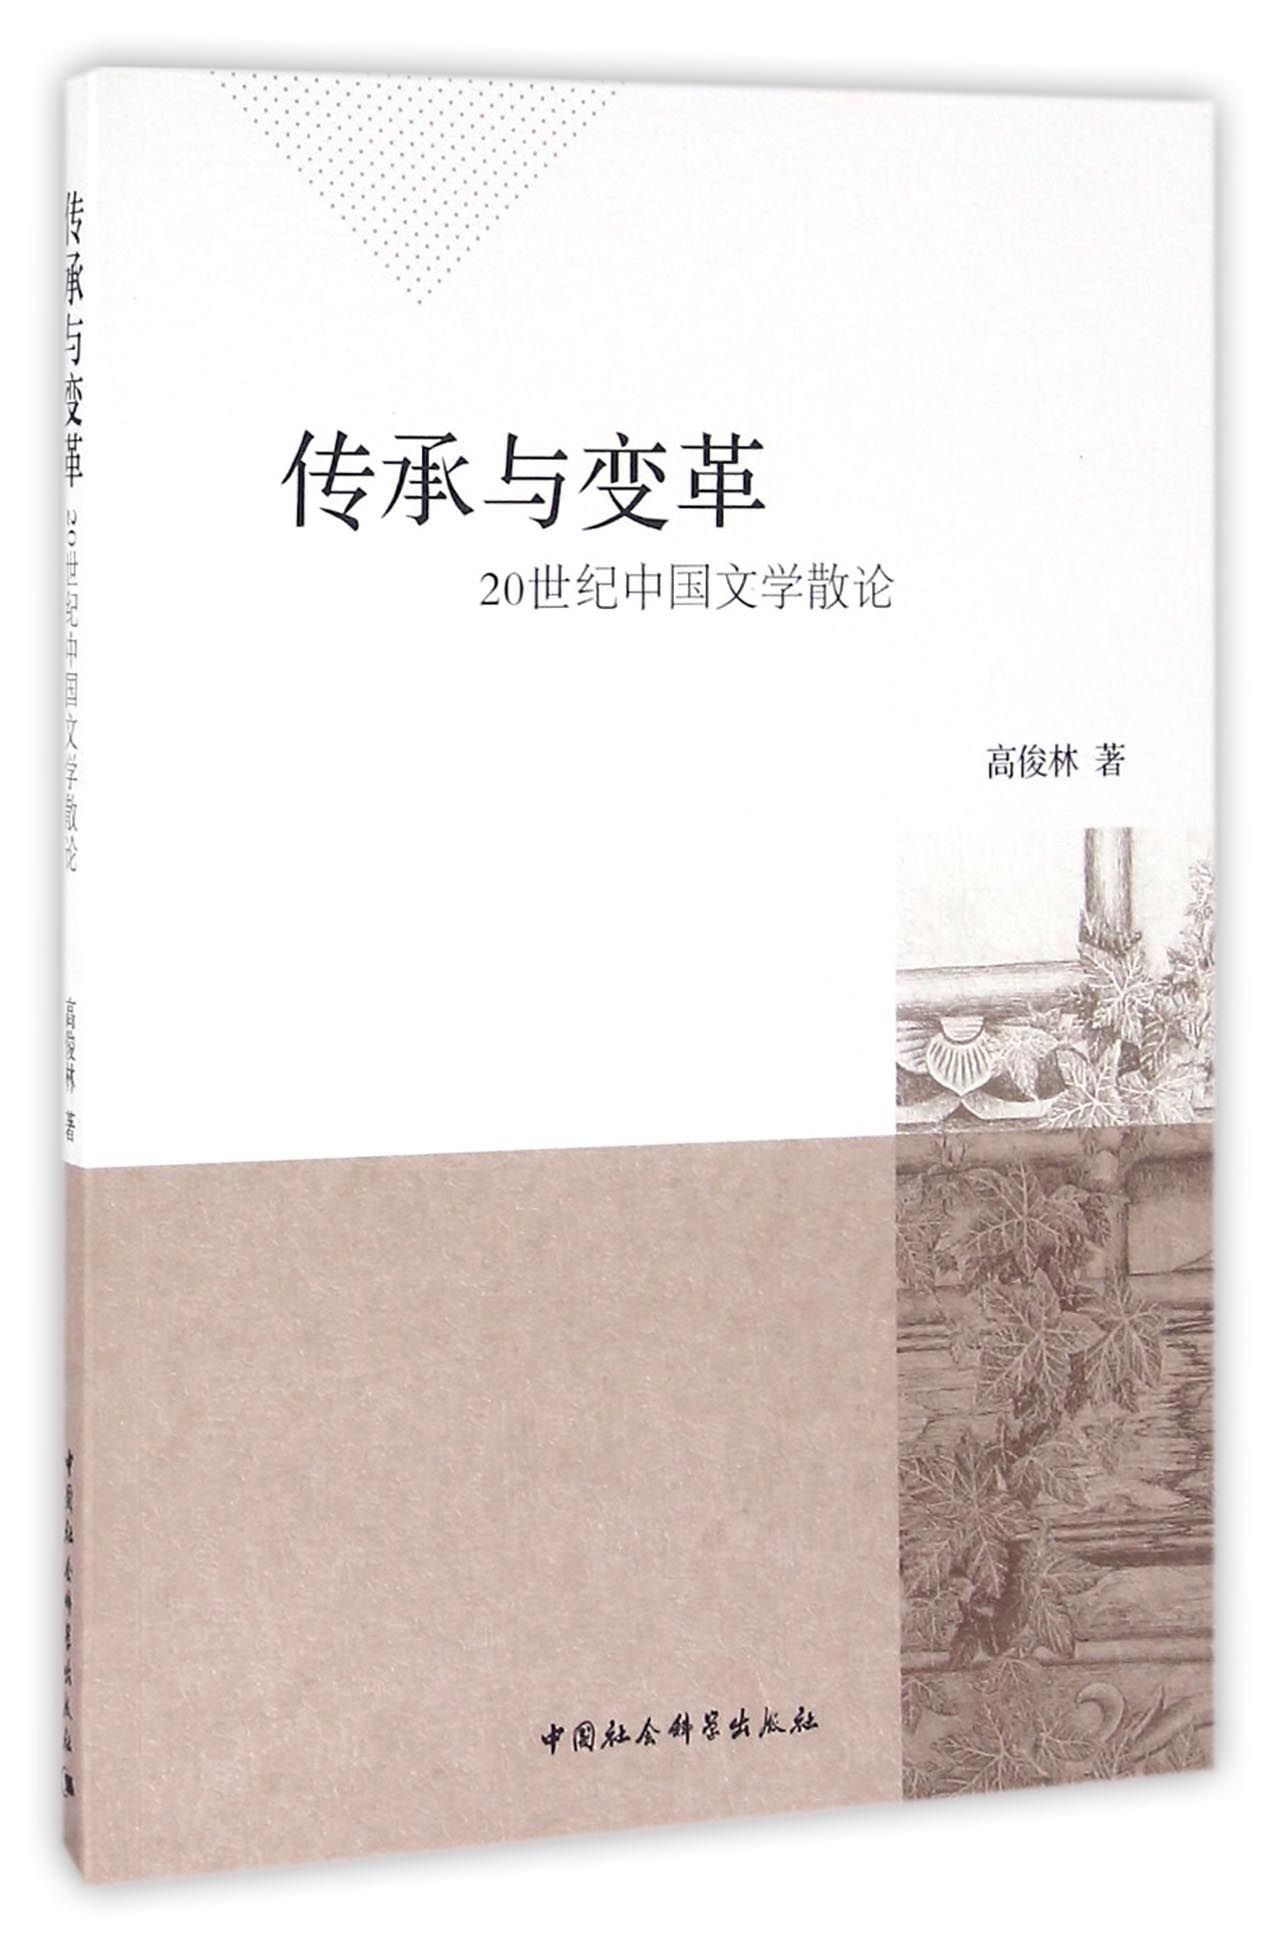 Inheritance and Revolution (Essays in Respect of Chinese Literature of 20th Century) (Chinese Edition) pdf